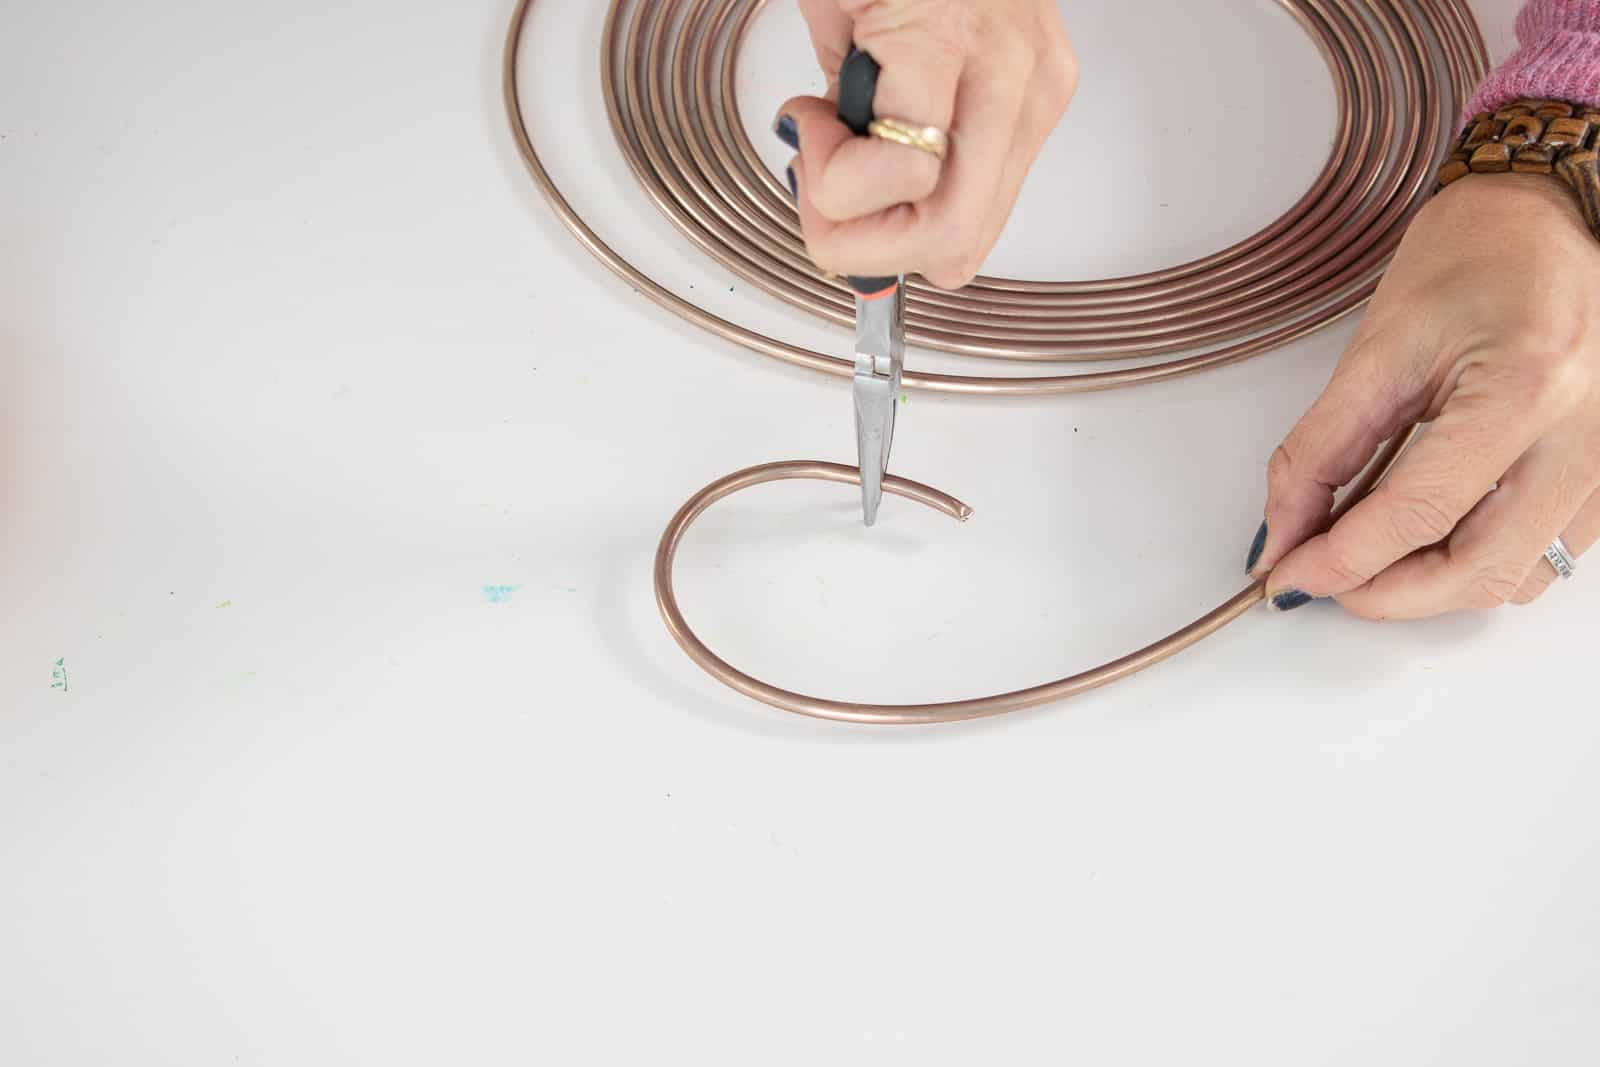 bend copper into a circle